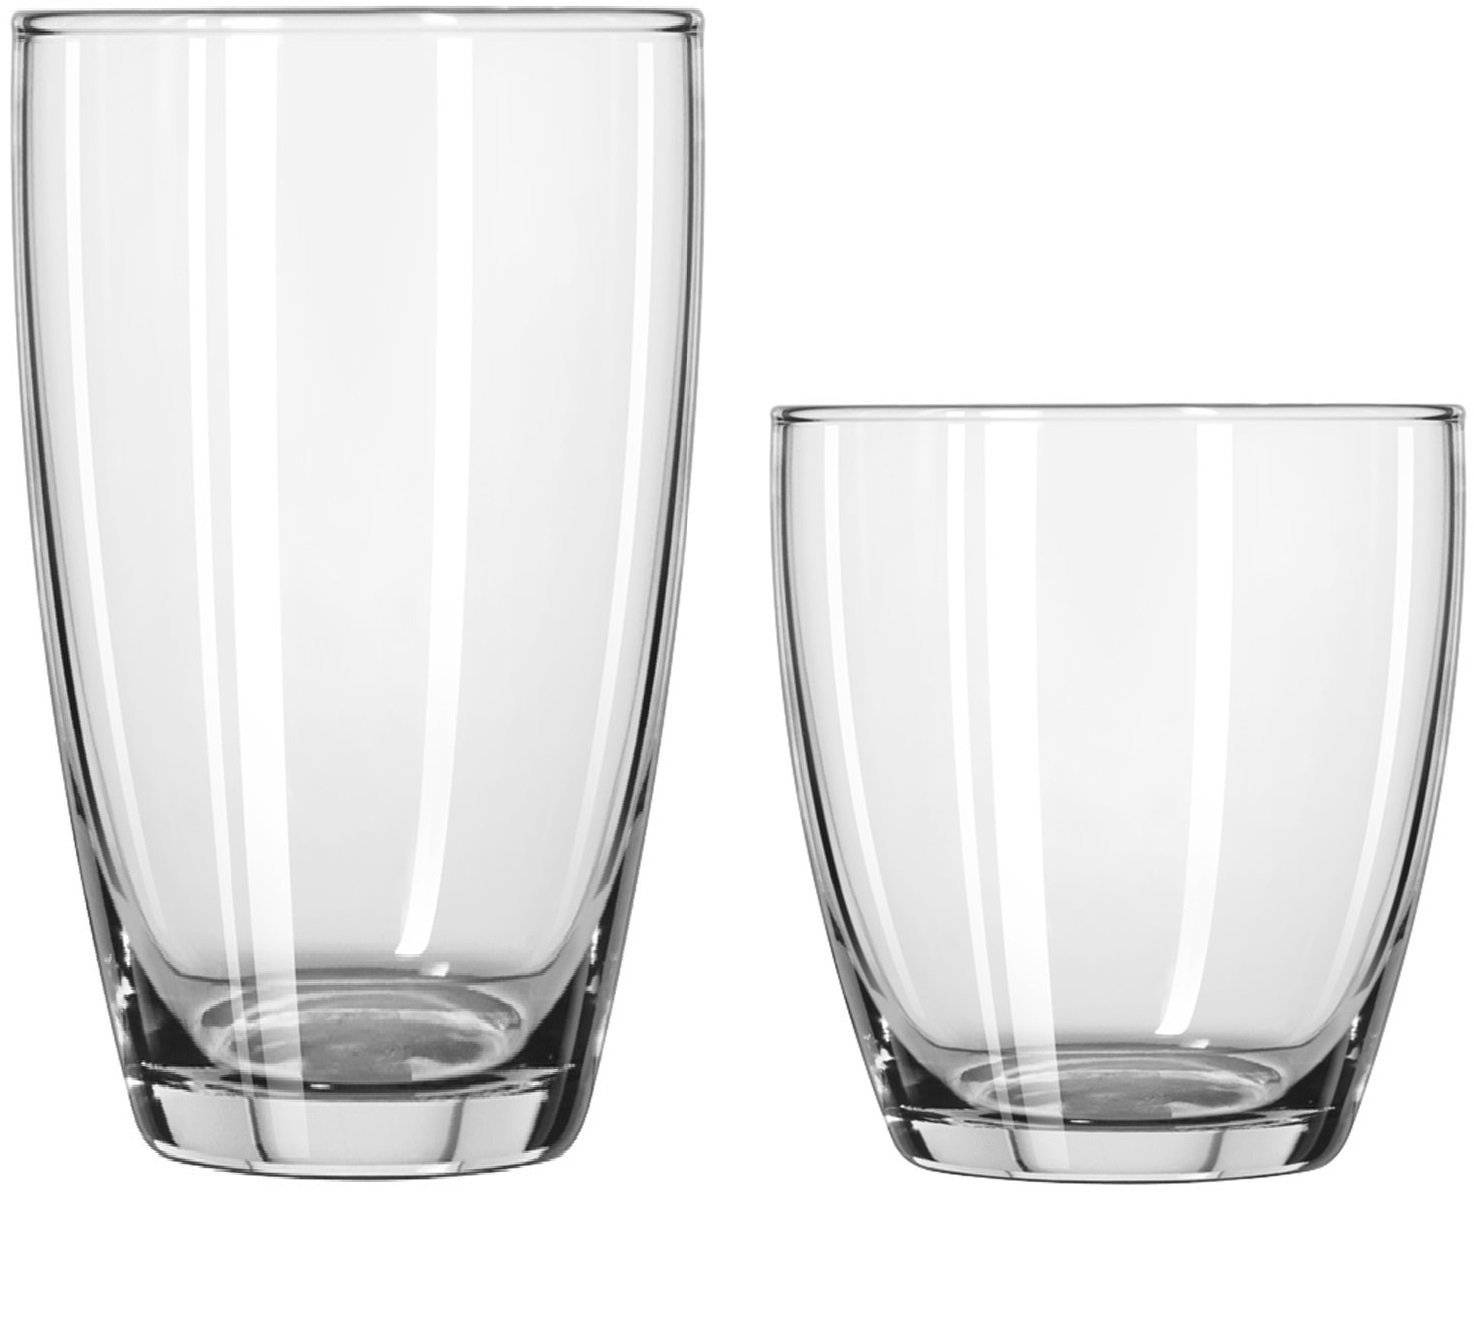 Circleware Smooth Huge Set of 16 Drinking Glasses, 8-16oz and 8-13oz Double Old Fashioned Whiskey Glass 44540